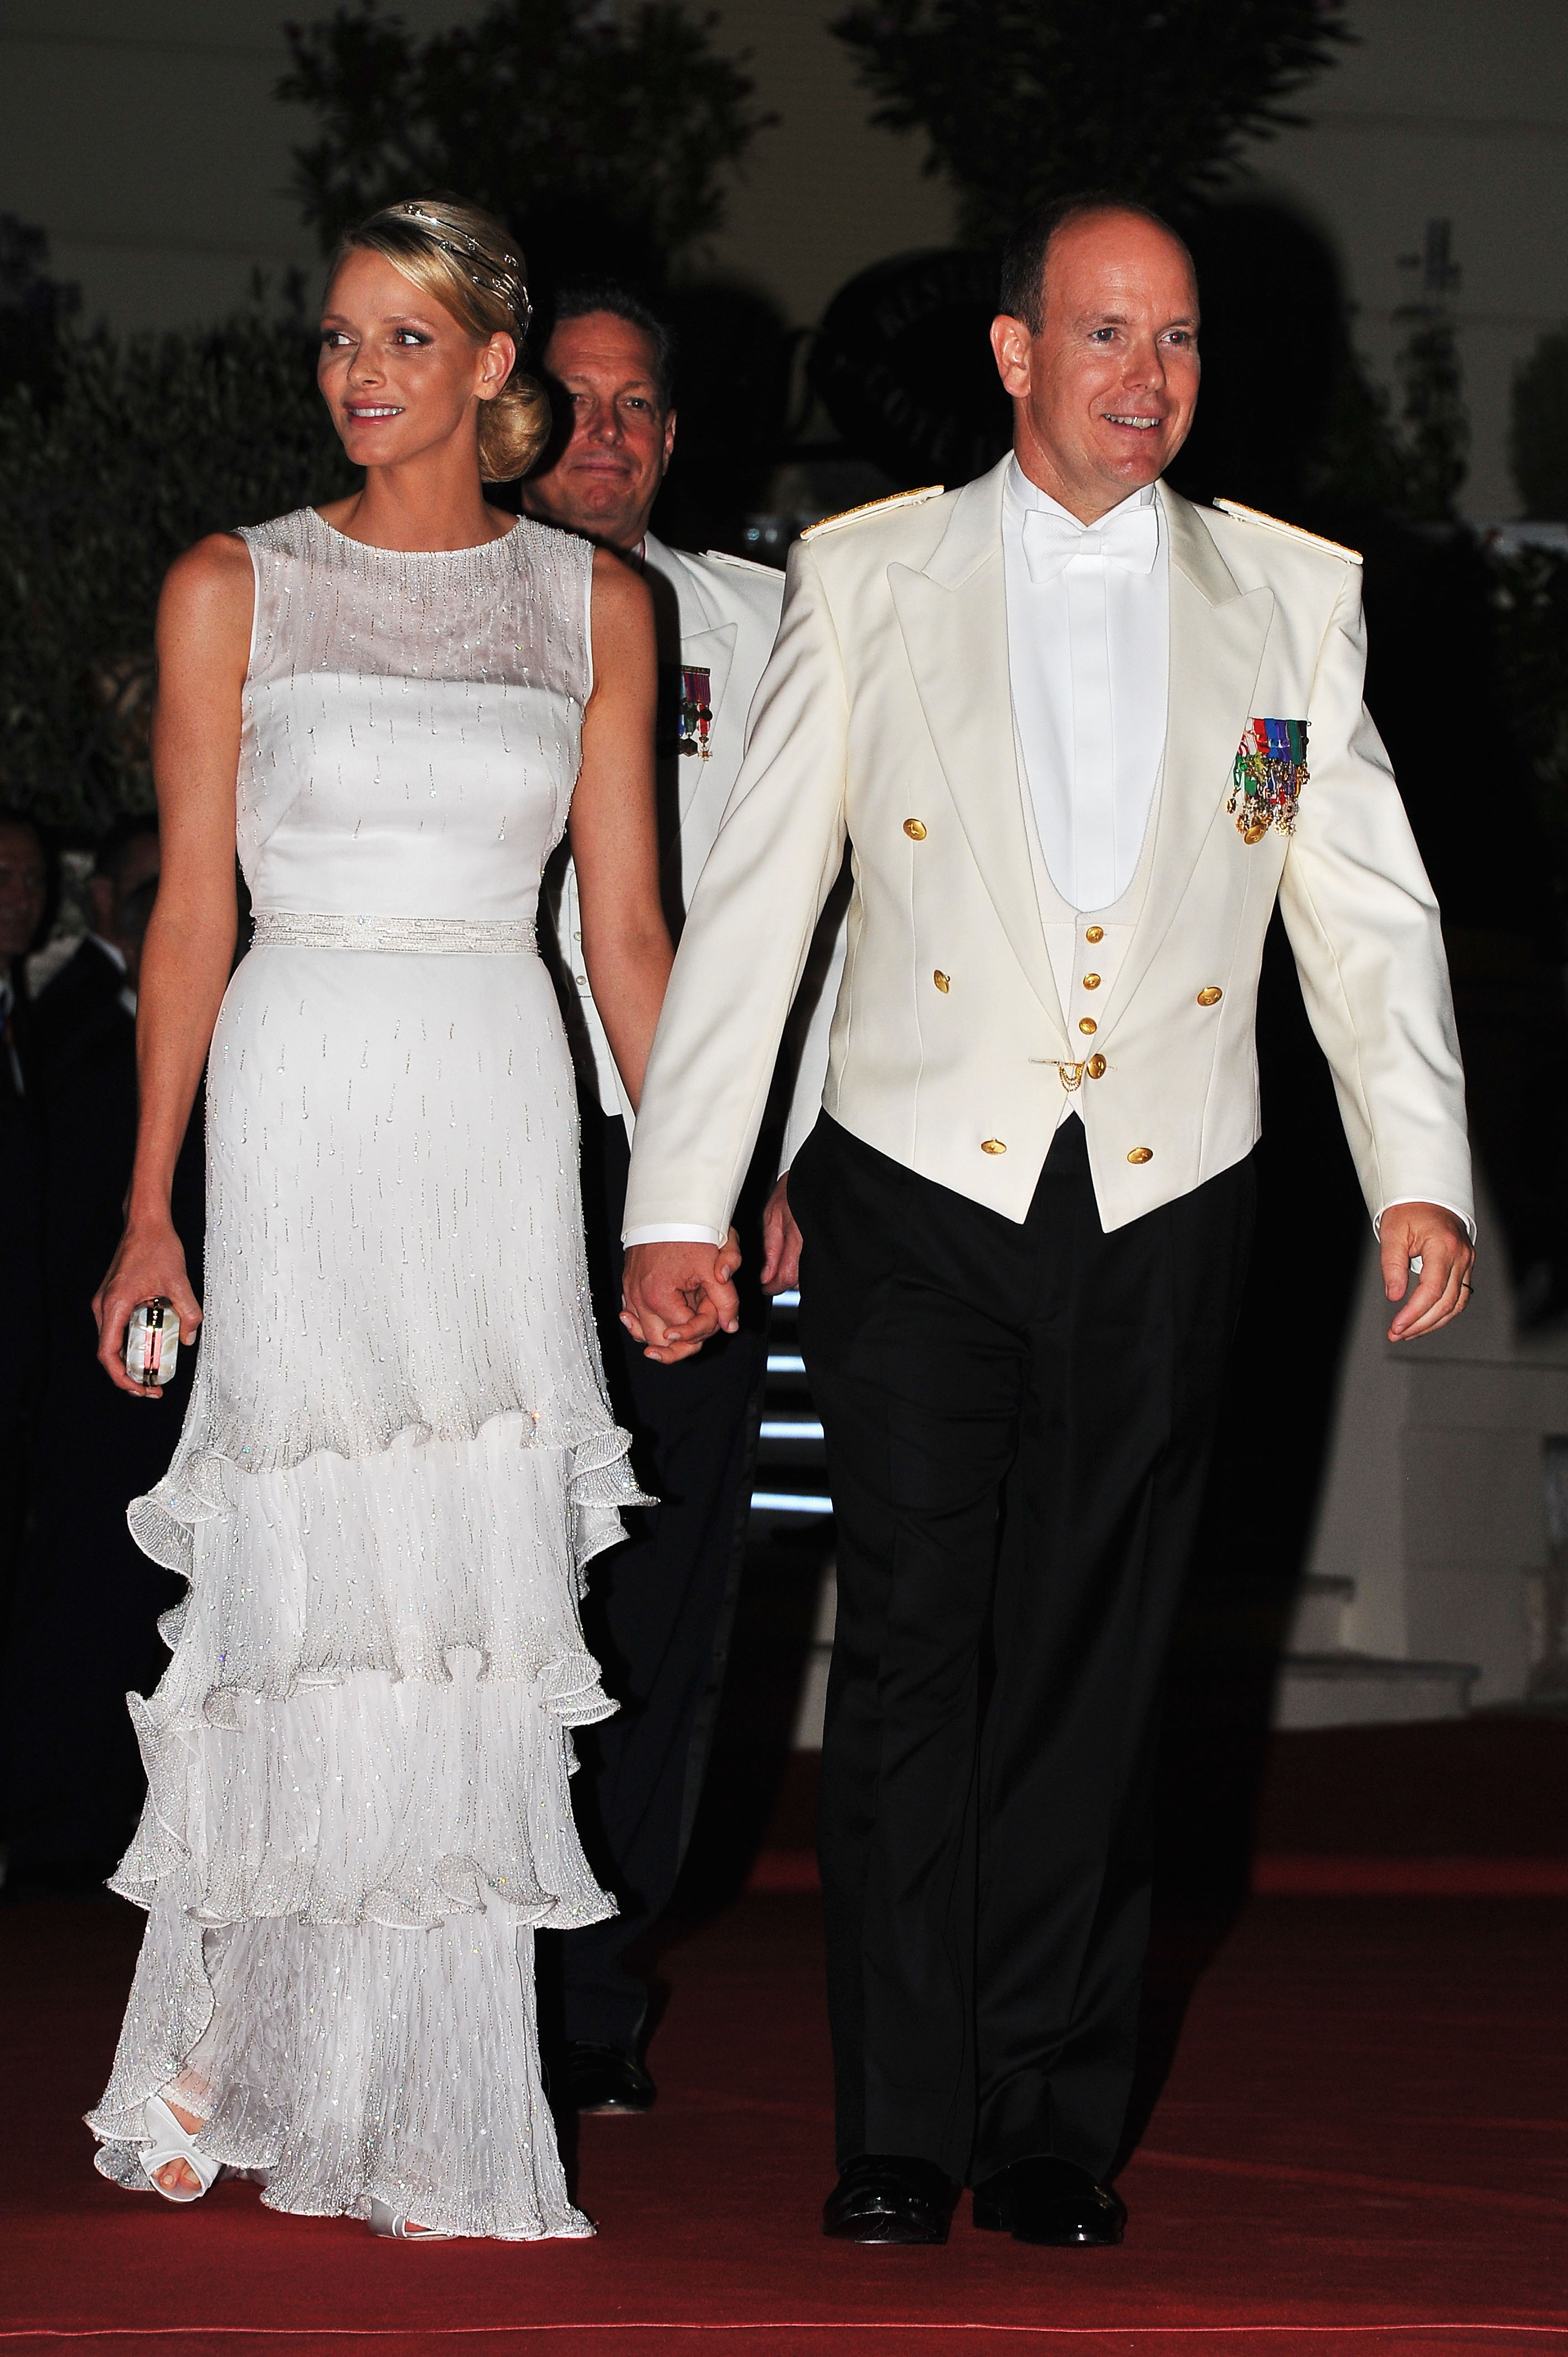 Princess Charlene of Monaco and Prince Albert celebrating their wedding day.